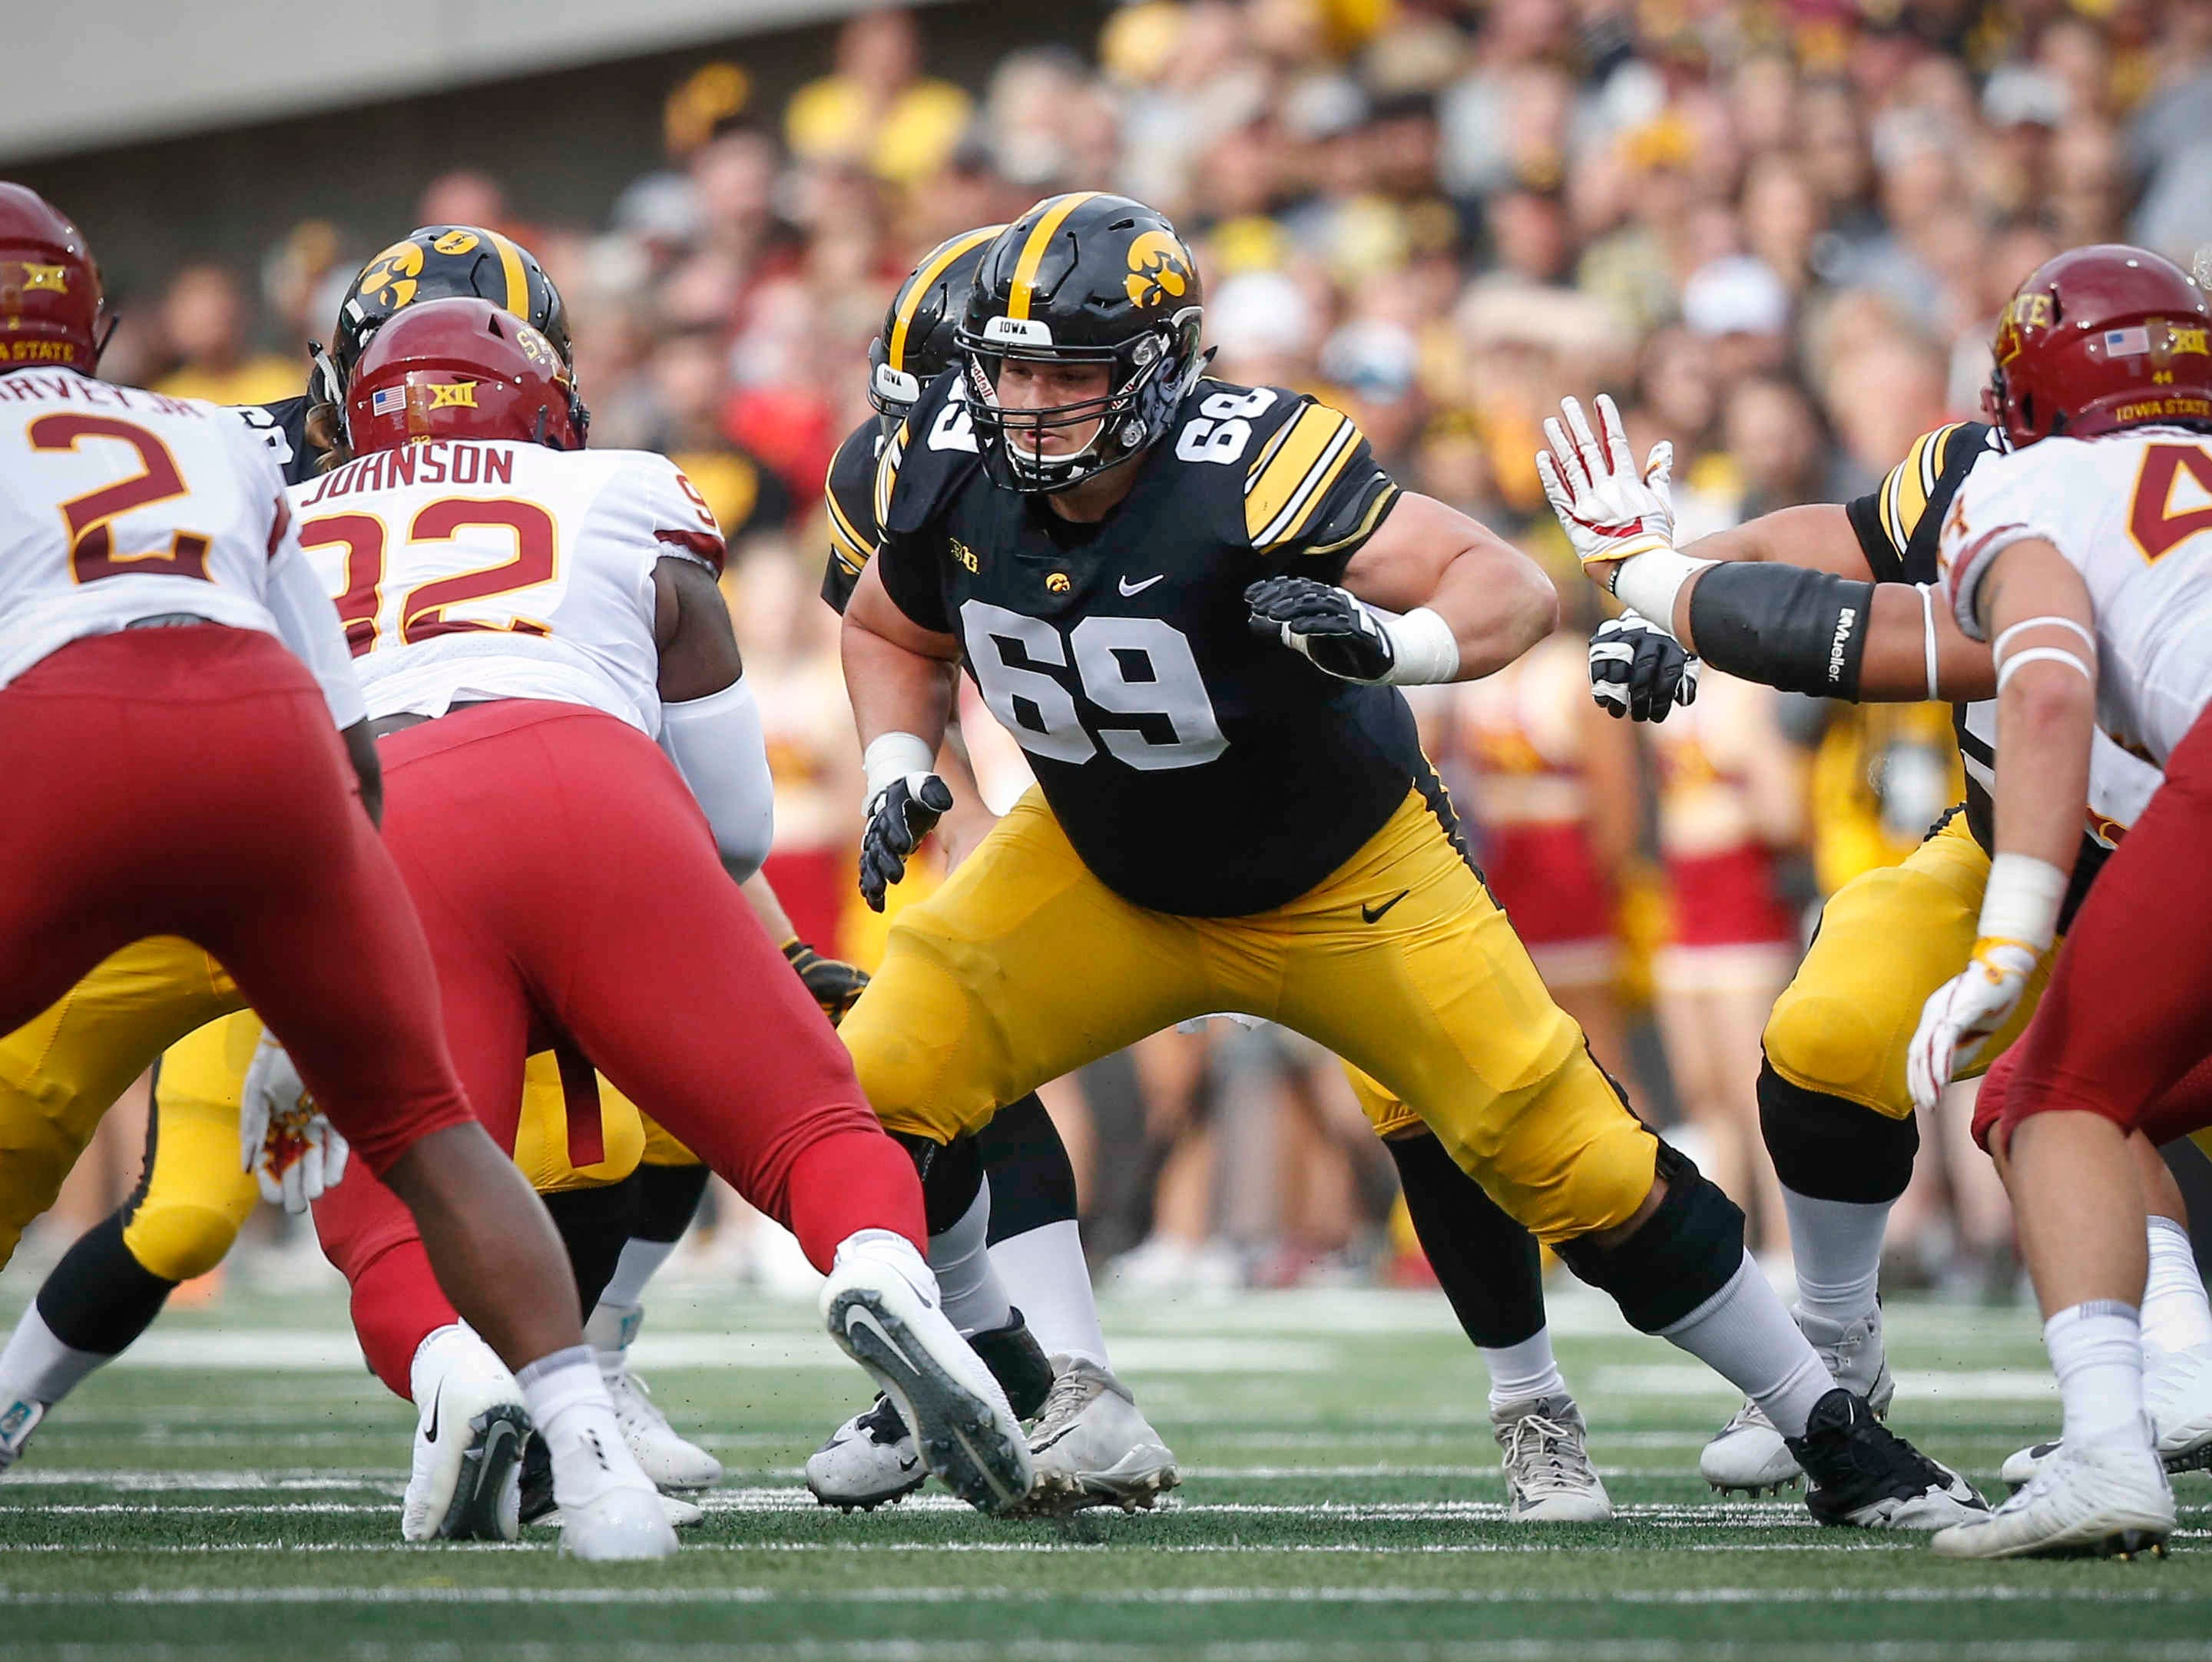 Iowa center Keegan Render helps protect the pocket against Iowa State on Saturday, Sept. 8, 2018, at Kinnick Stadium in Iowa City.